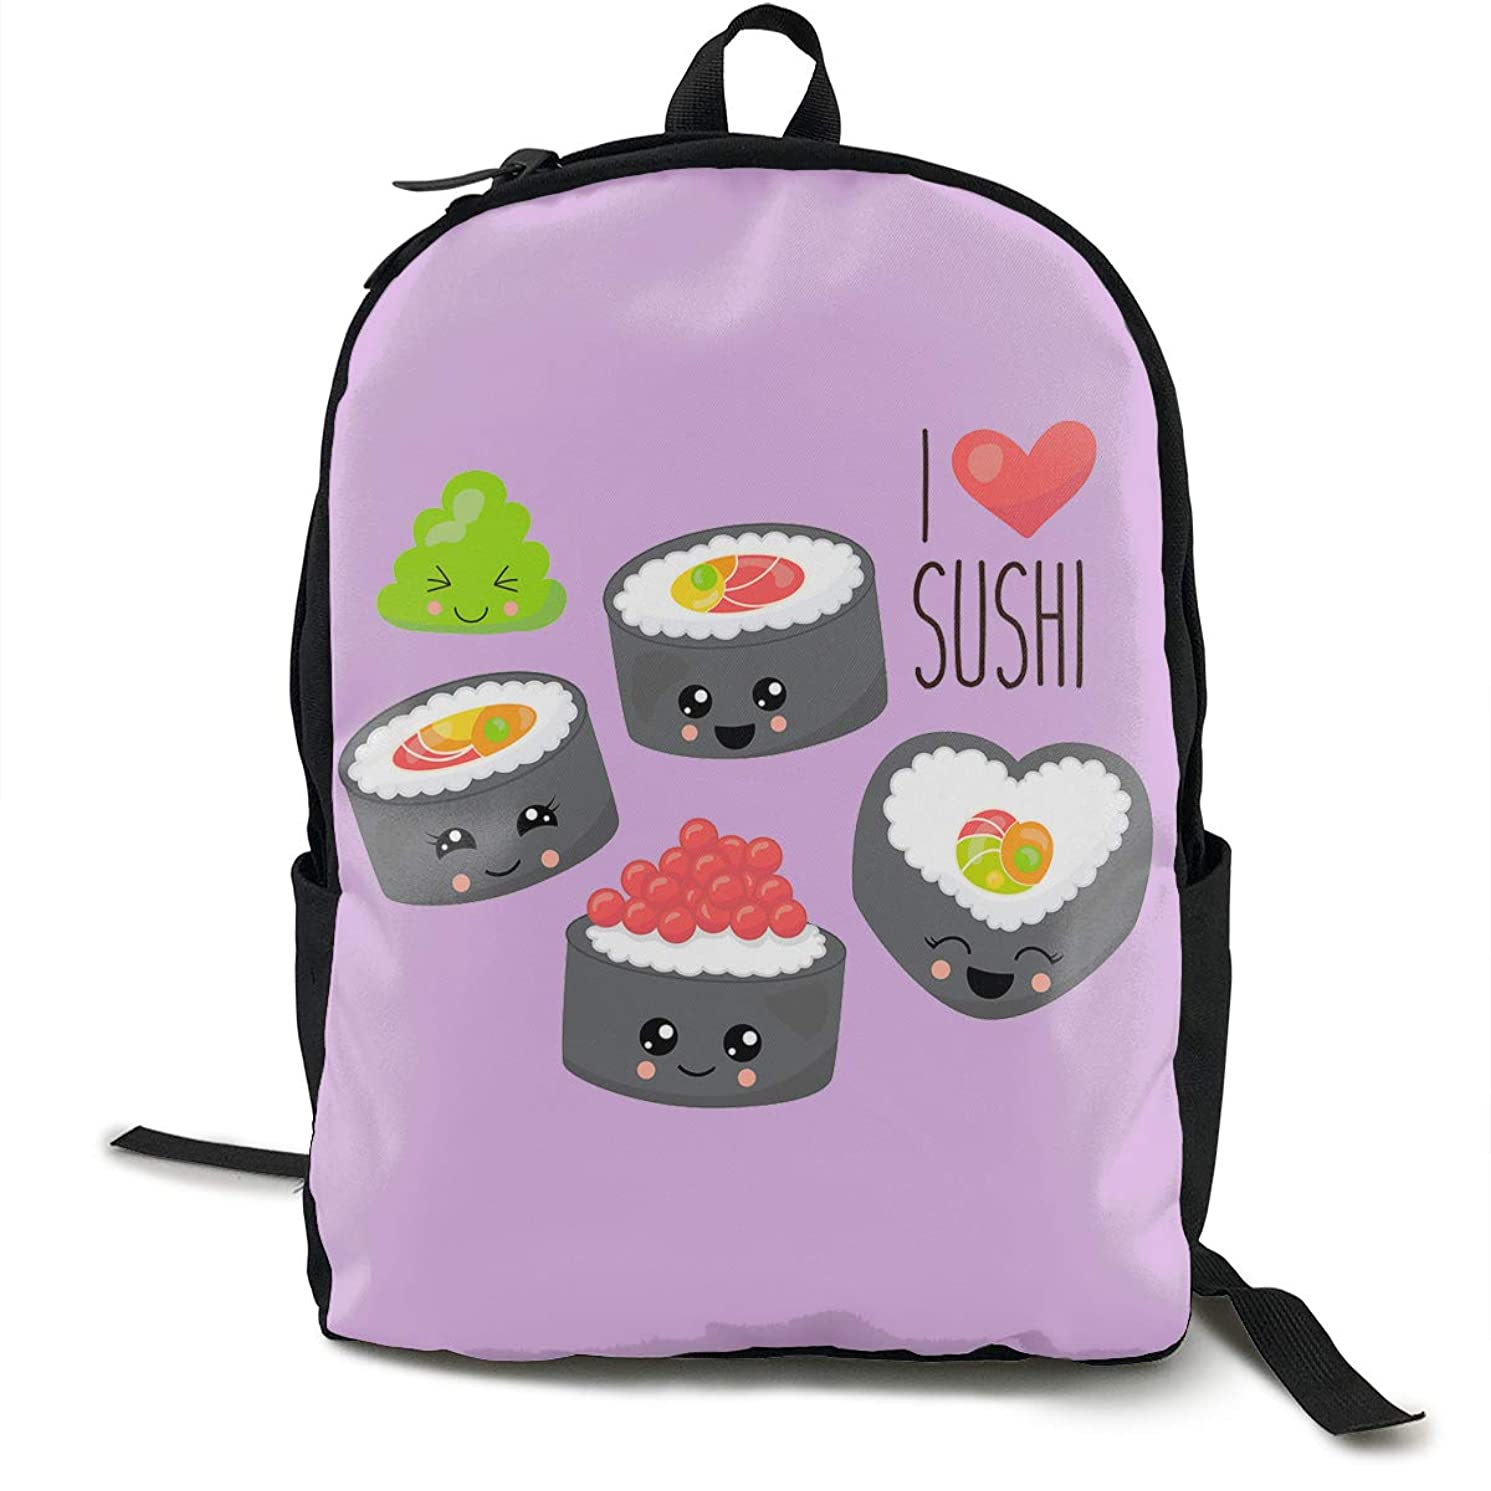 KOSFA I Love Sushi Backpacks Anti Theft Shoulder Bags Laptop School Travel Large Bag for Men Women Black